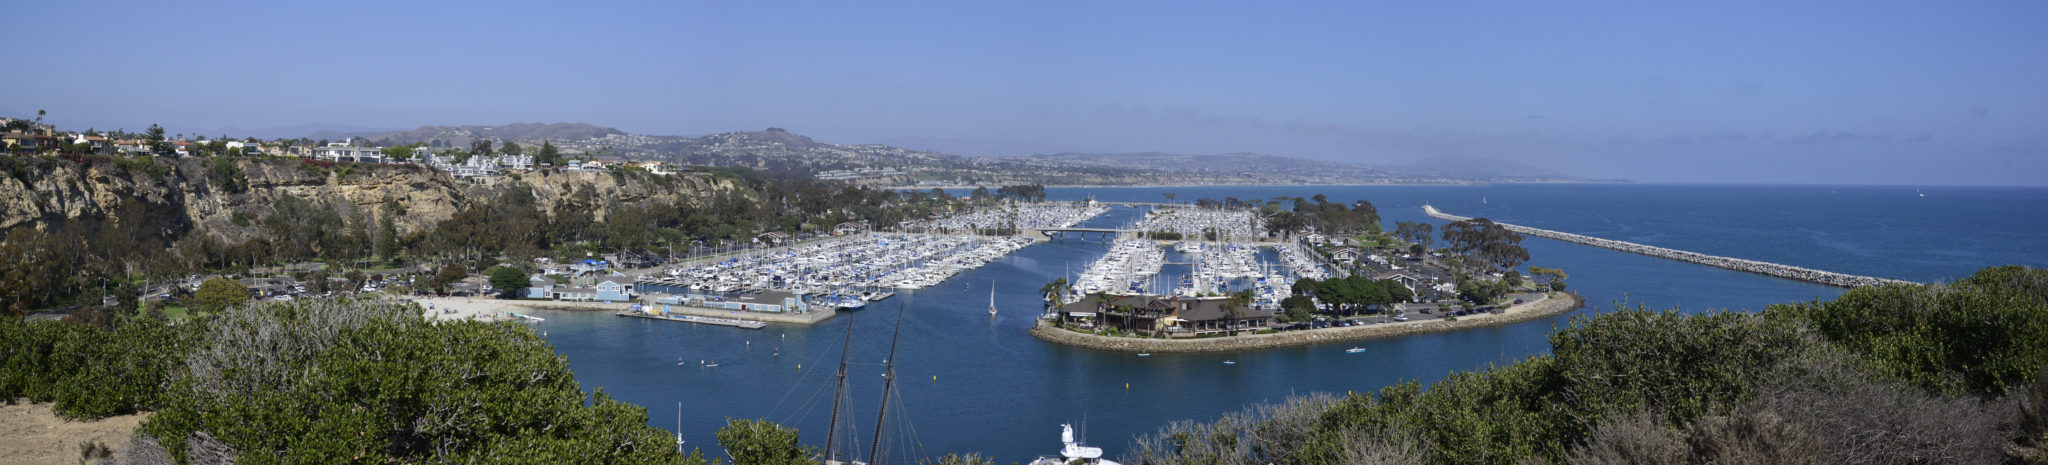 Dana Point Harbor Panorama1 (1)